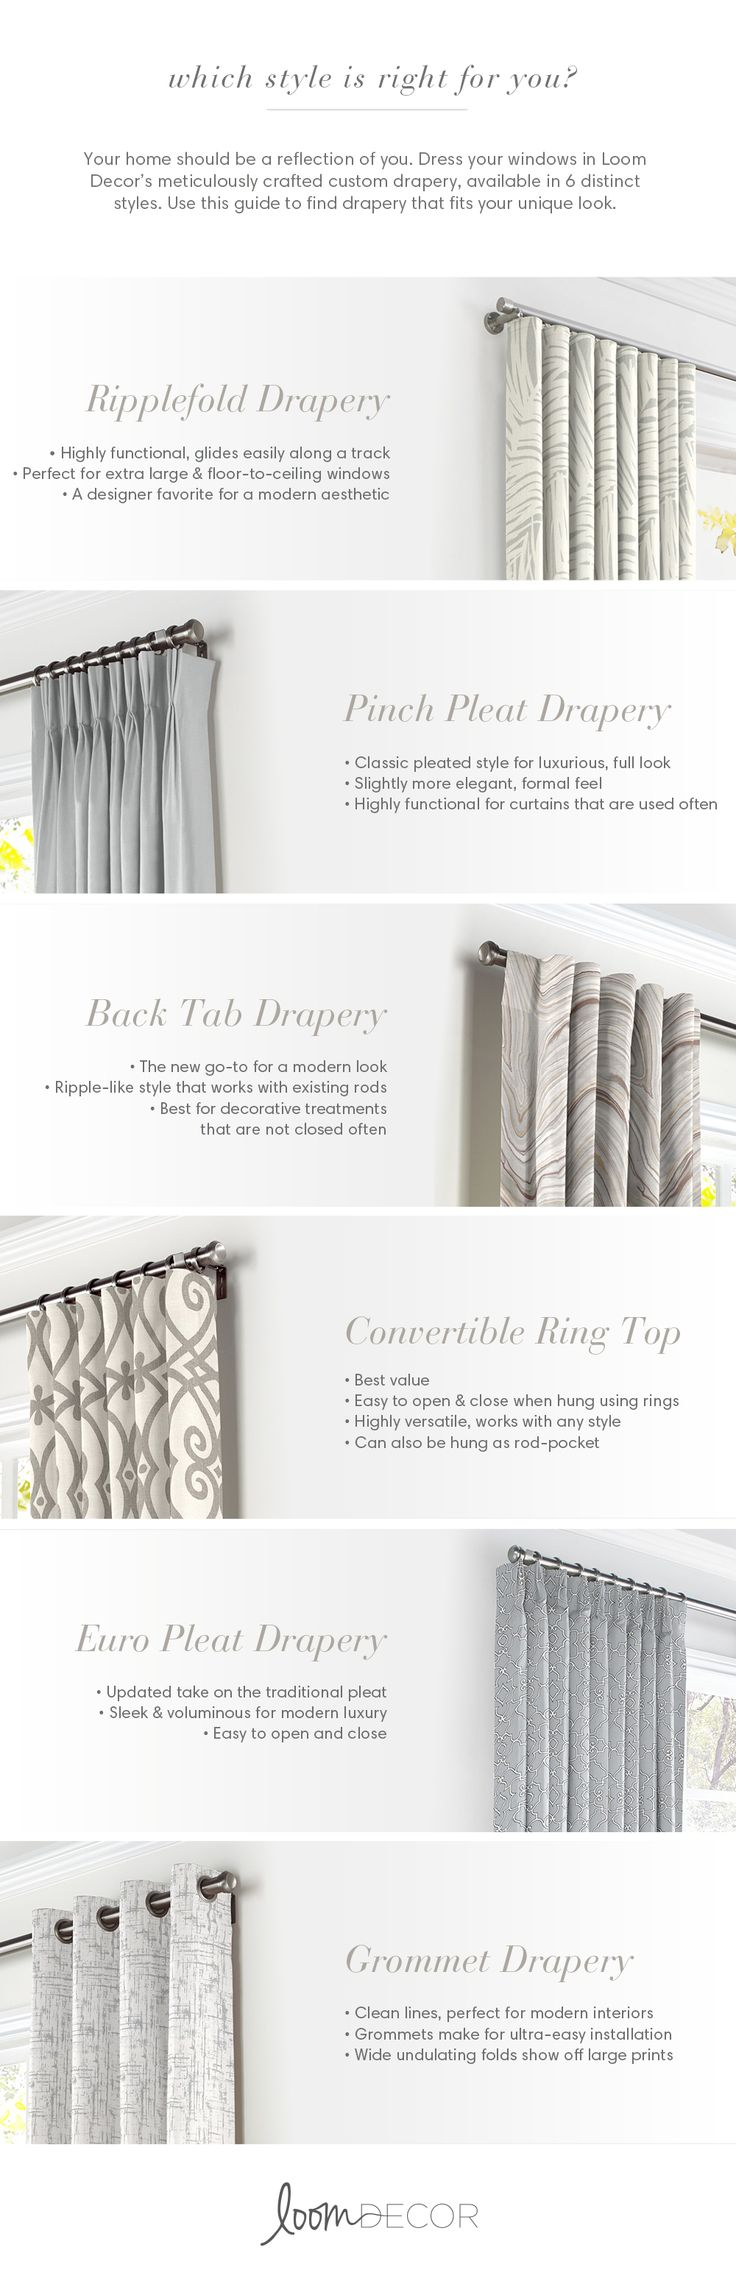 How To Complete A Room With Elegant Sheers | Elegant, Curtain Poles And Room